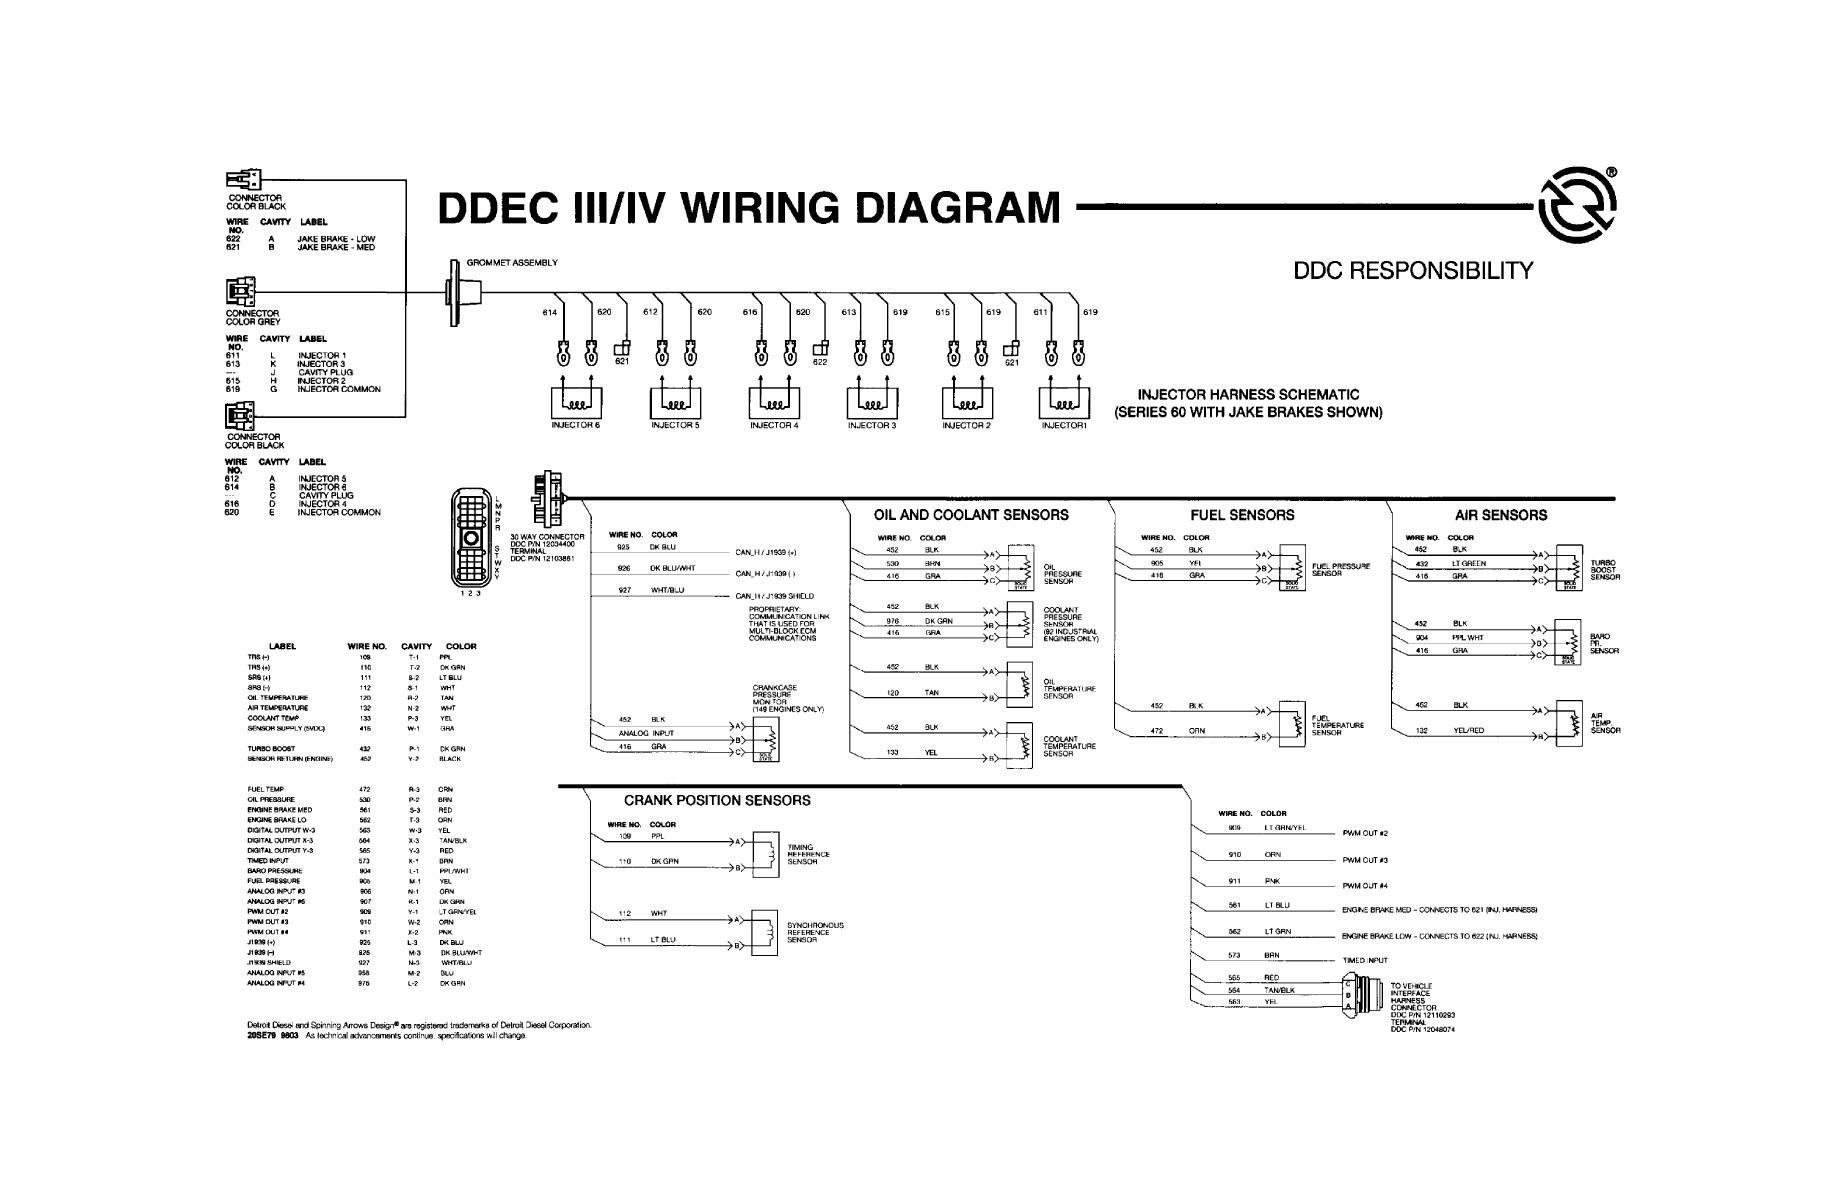 cat ecm pin wiring diagram cat wiring diagrams tm 9 2320 302 20 21079im cat ecm pin wiring diagram